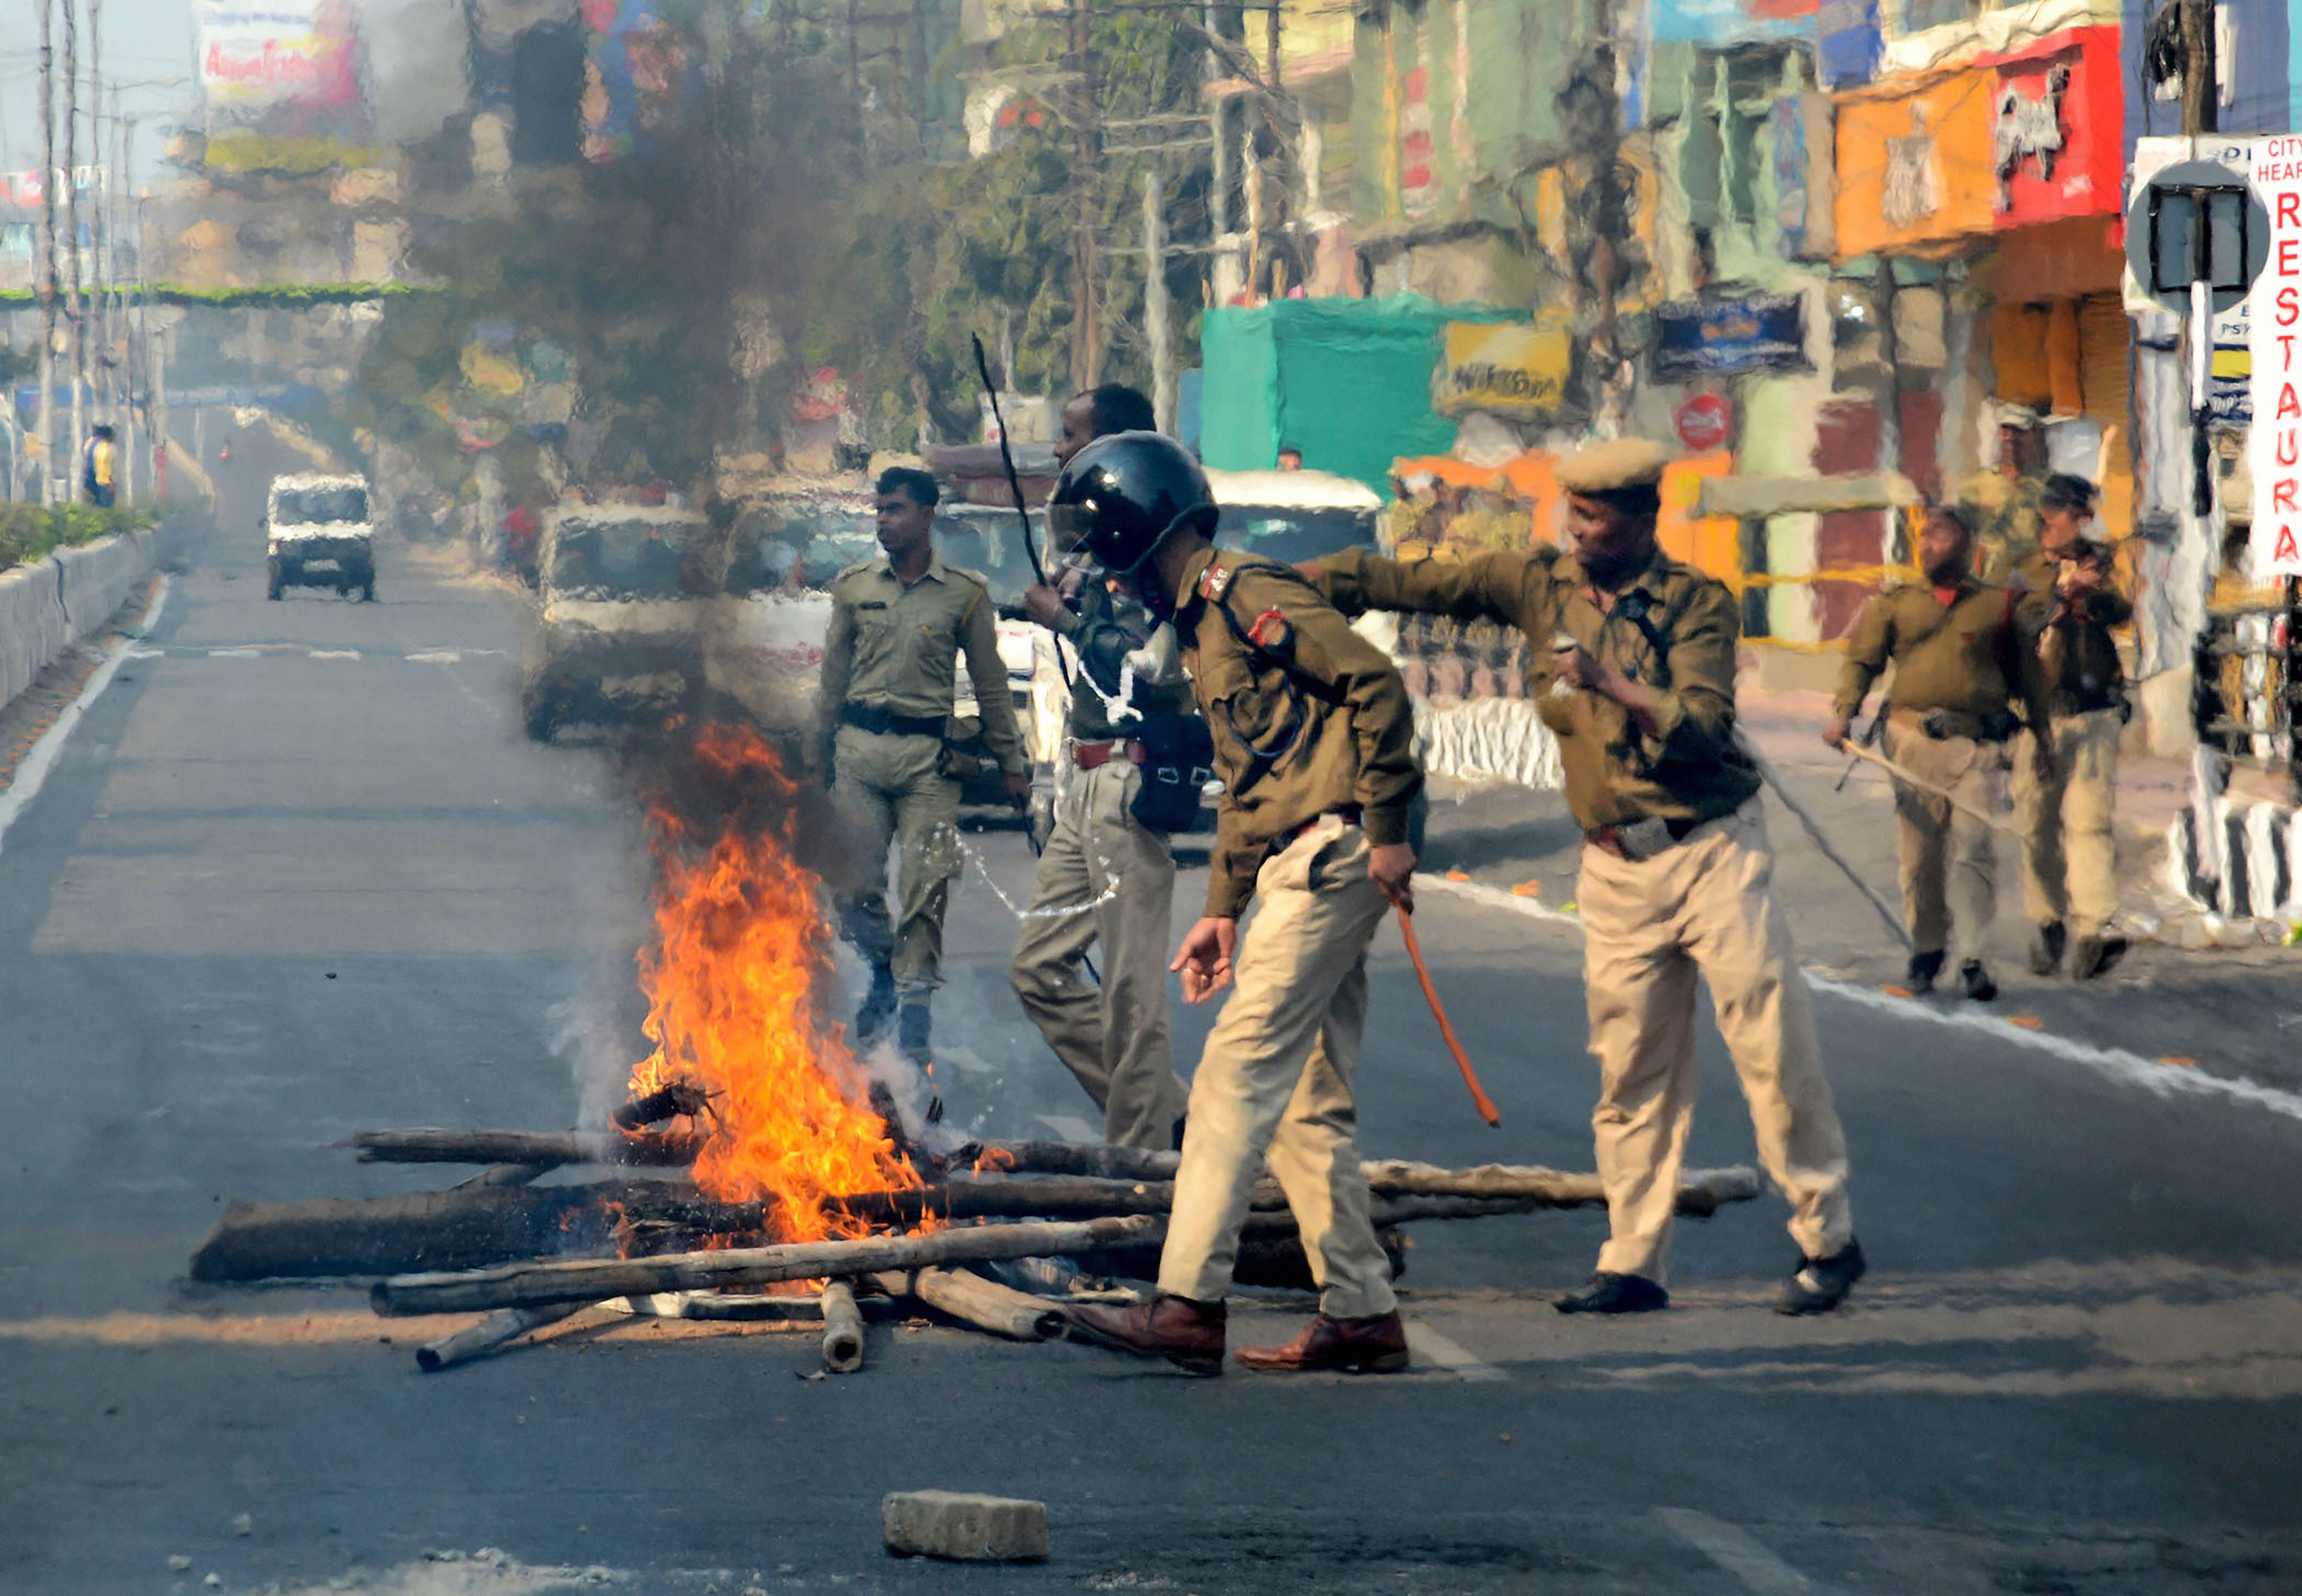 Security personnel remove burning logs that were set on fire by the protesters to block a road, during an agitation against the Citizenship (Amendment) Bill, in Guwahati, Thursday, December 12, 2019.